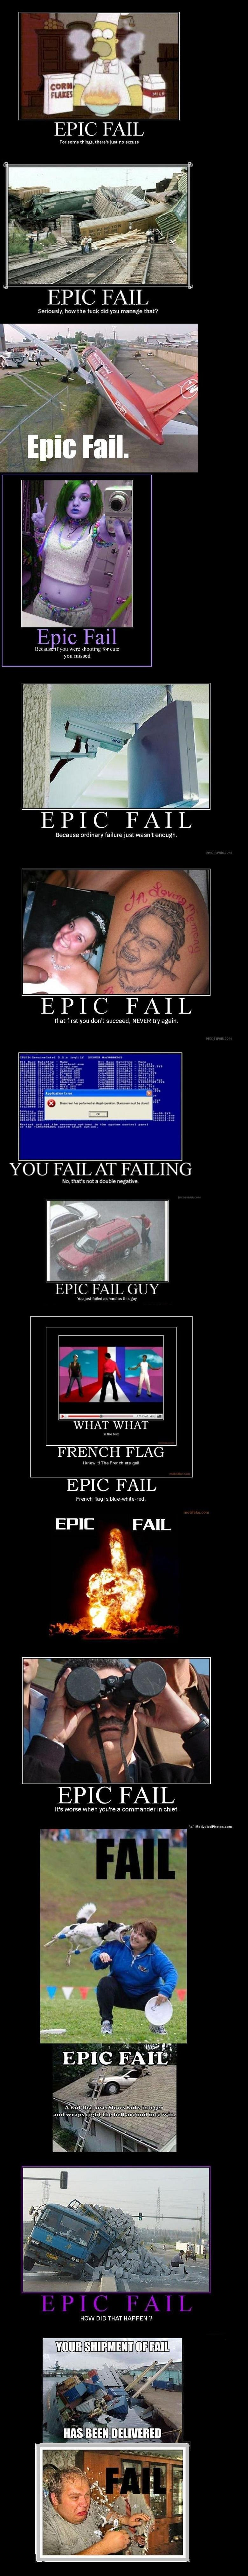 Fails. . EPIC AIL For some things. there' sjust no excuse Seriously, how the fuck did you manage that? E Fail Human.» rm mm: wanting my co: you missed PIC PAIL